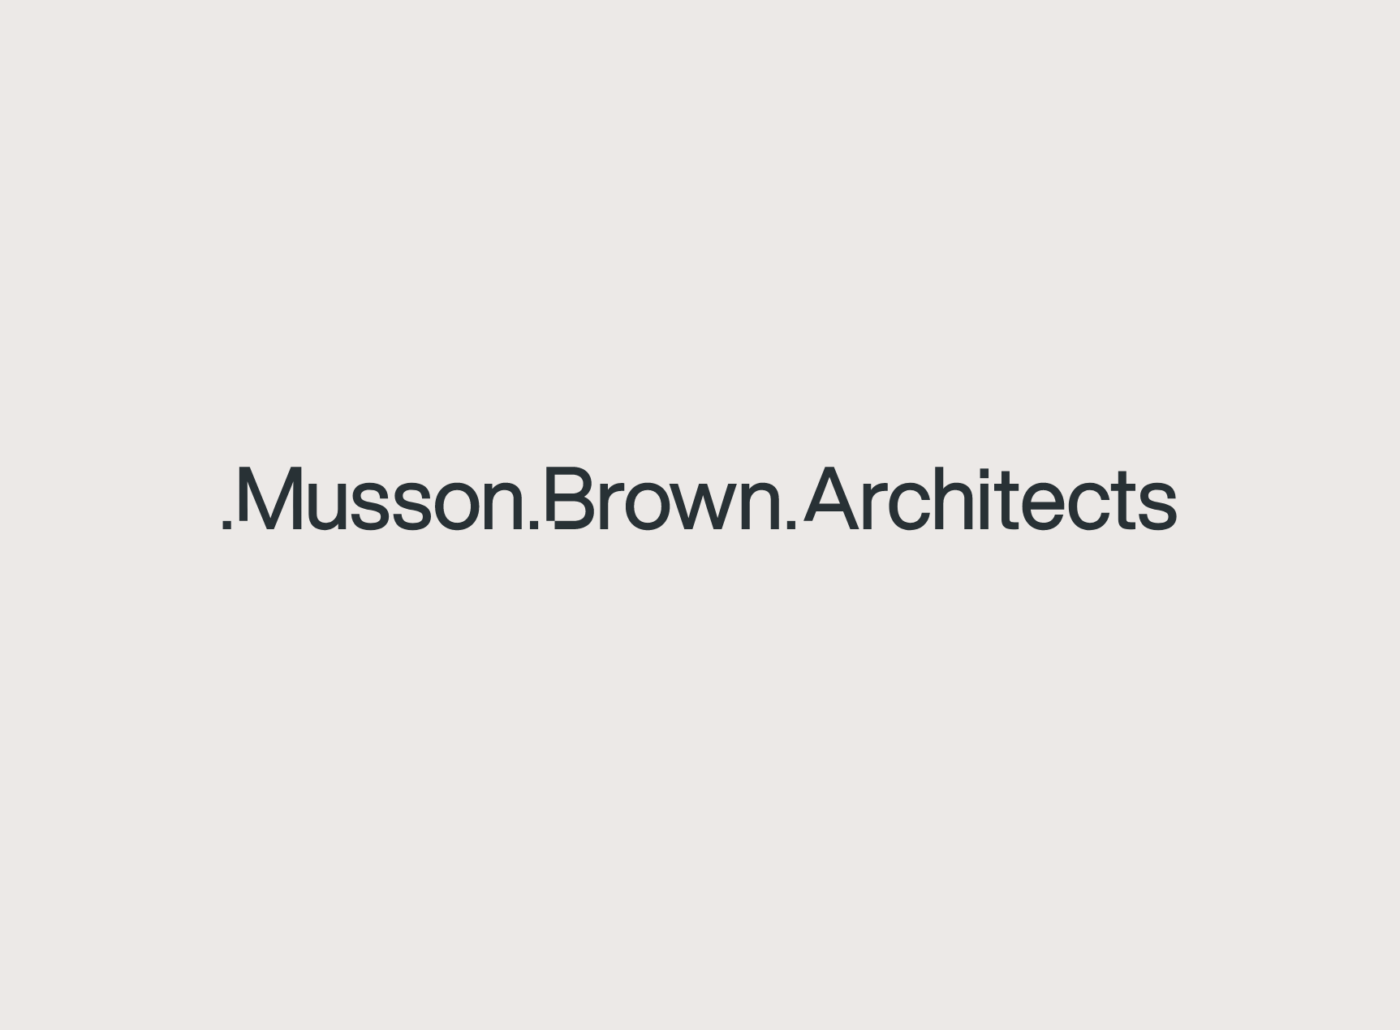 Musson Brown Architects logo by TAC